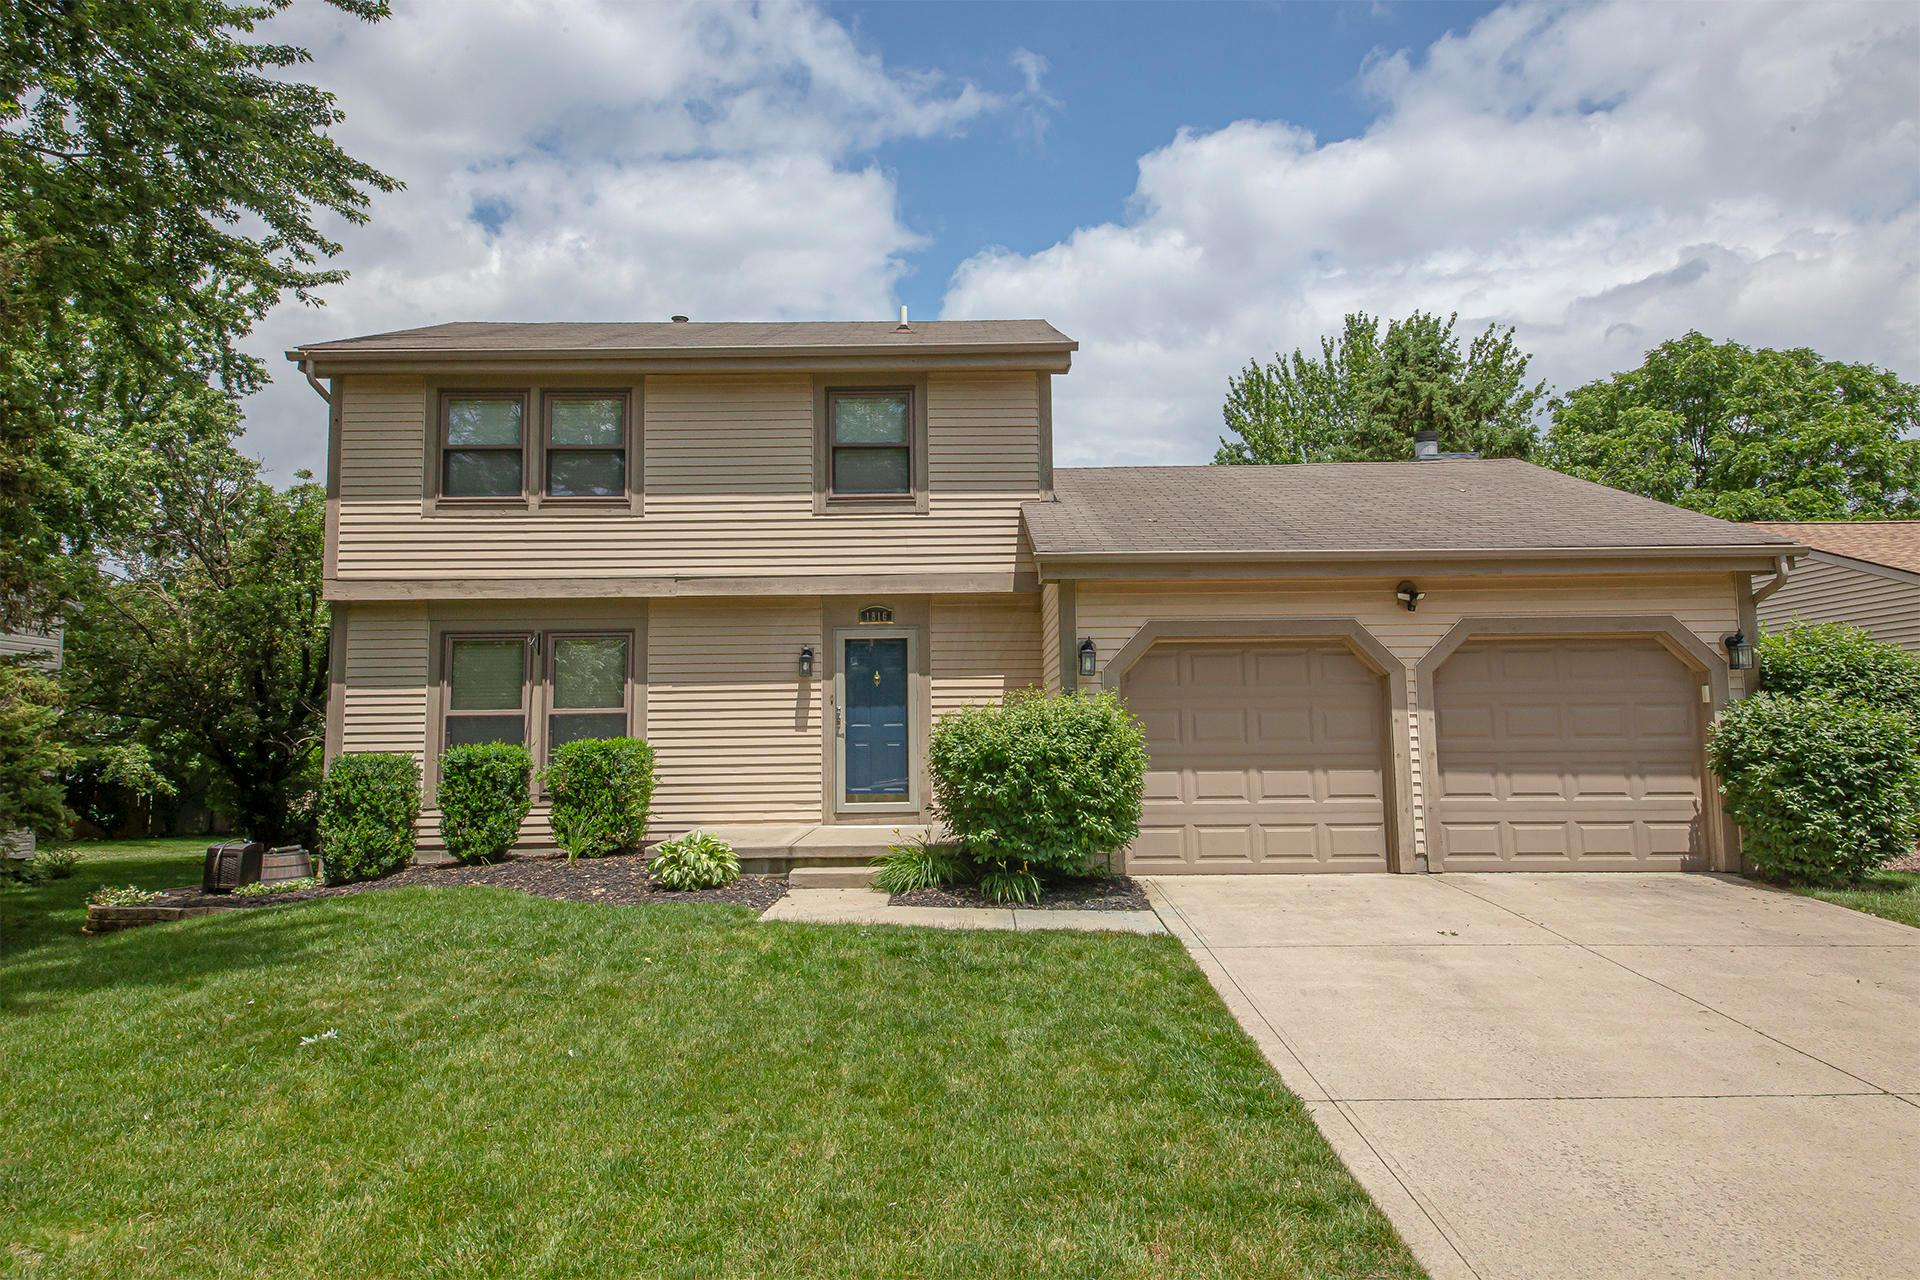 1816 Gallo Drive, Powell, Ohio 43065, 3 Bedrooms Bedrooms, ,3 BathroomsBathrooms,Residential,For Sale,Gallo,220020183